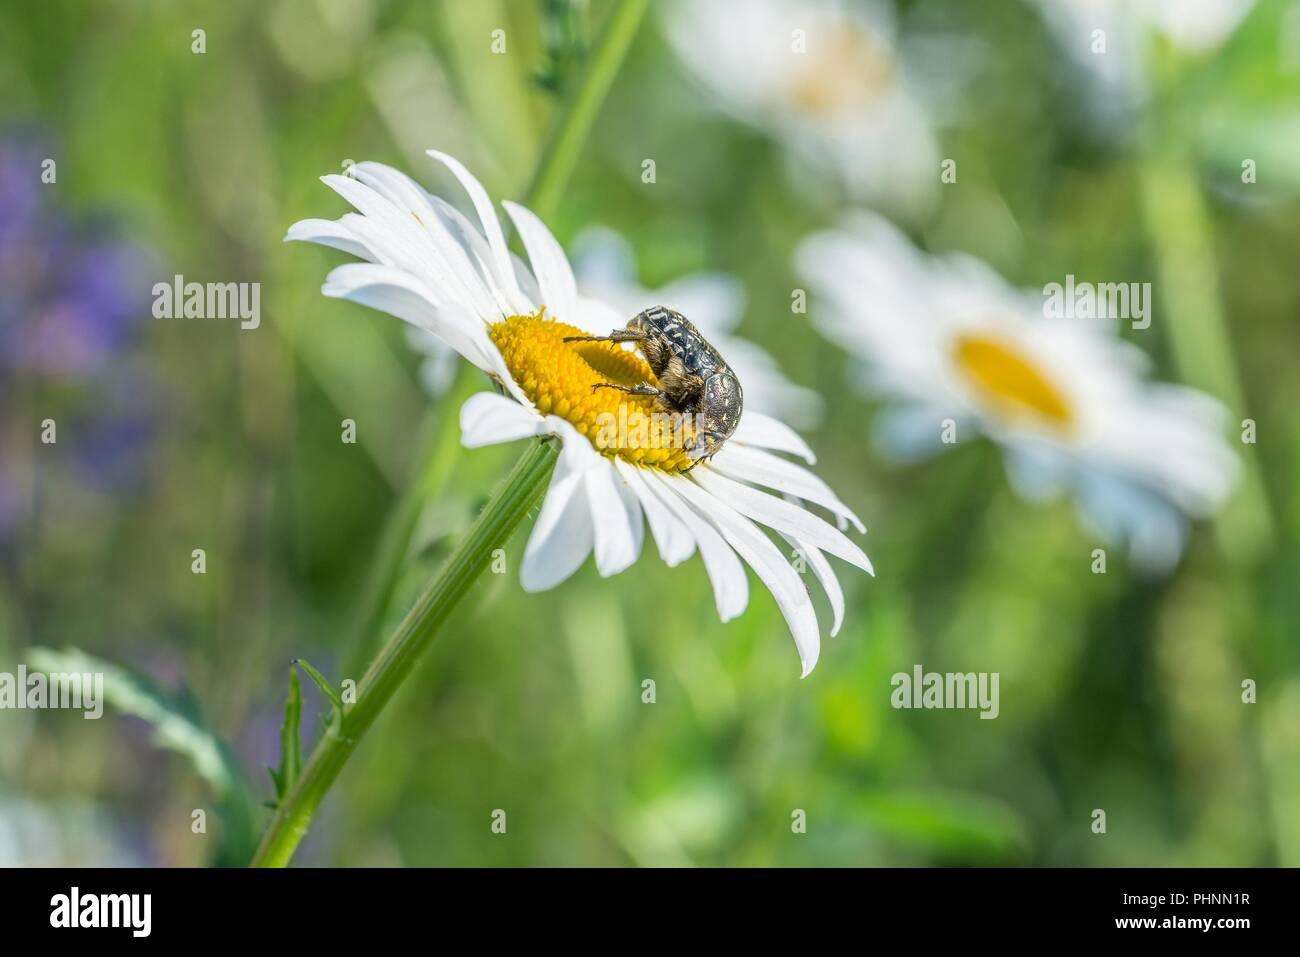 Mourning rose beetle on a flower meadow, Germany - Stock Image